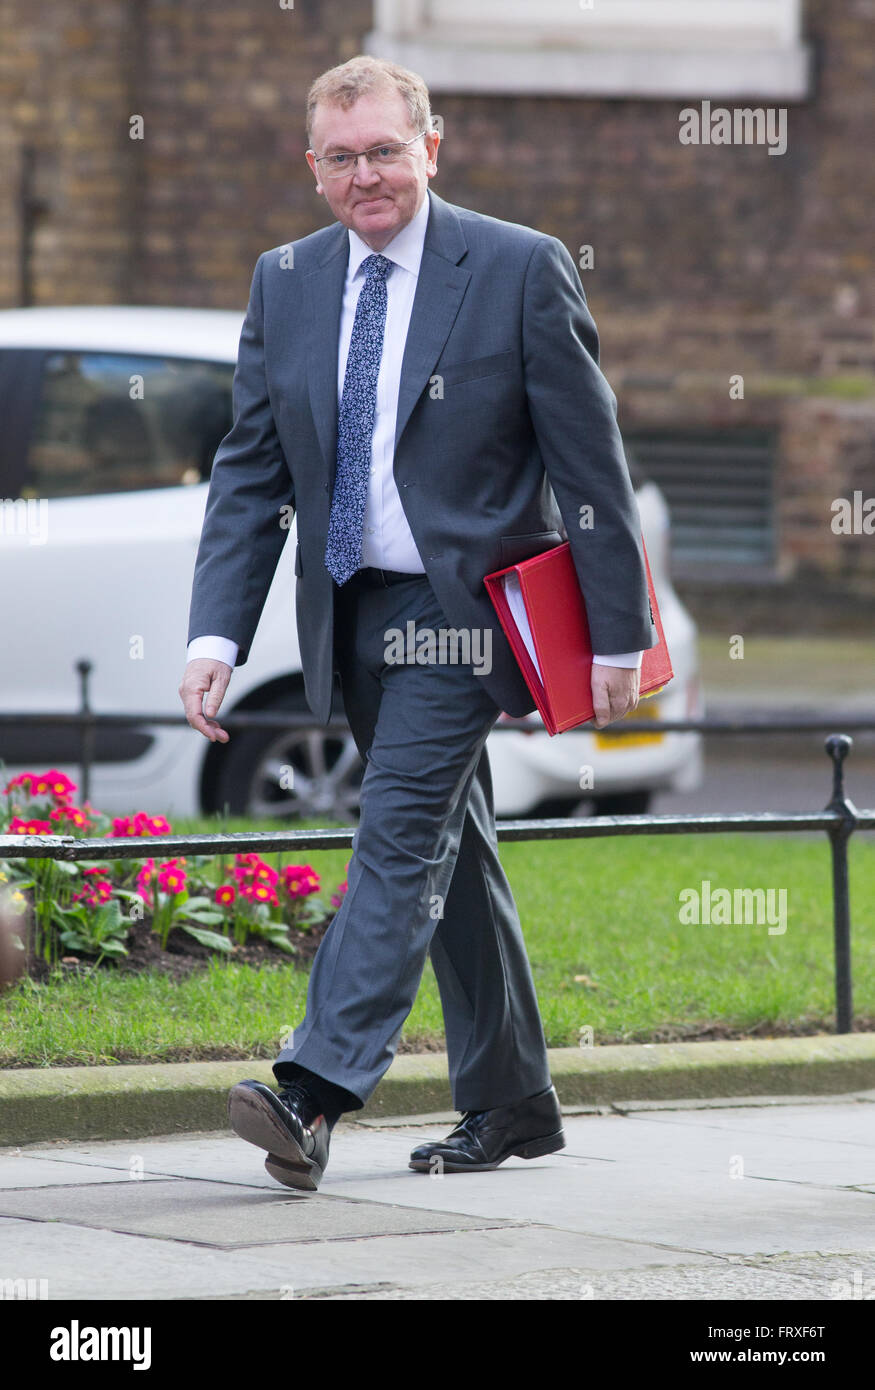 David Mundell,secretary of state for Scotland,arrives at Downing street for a cabinet meeting - Stock Image